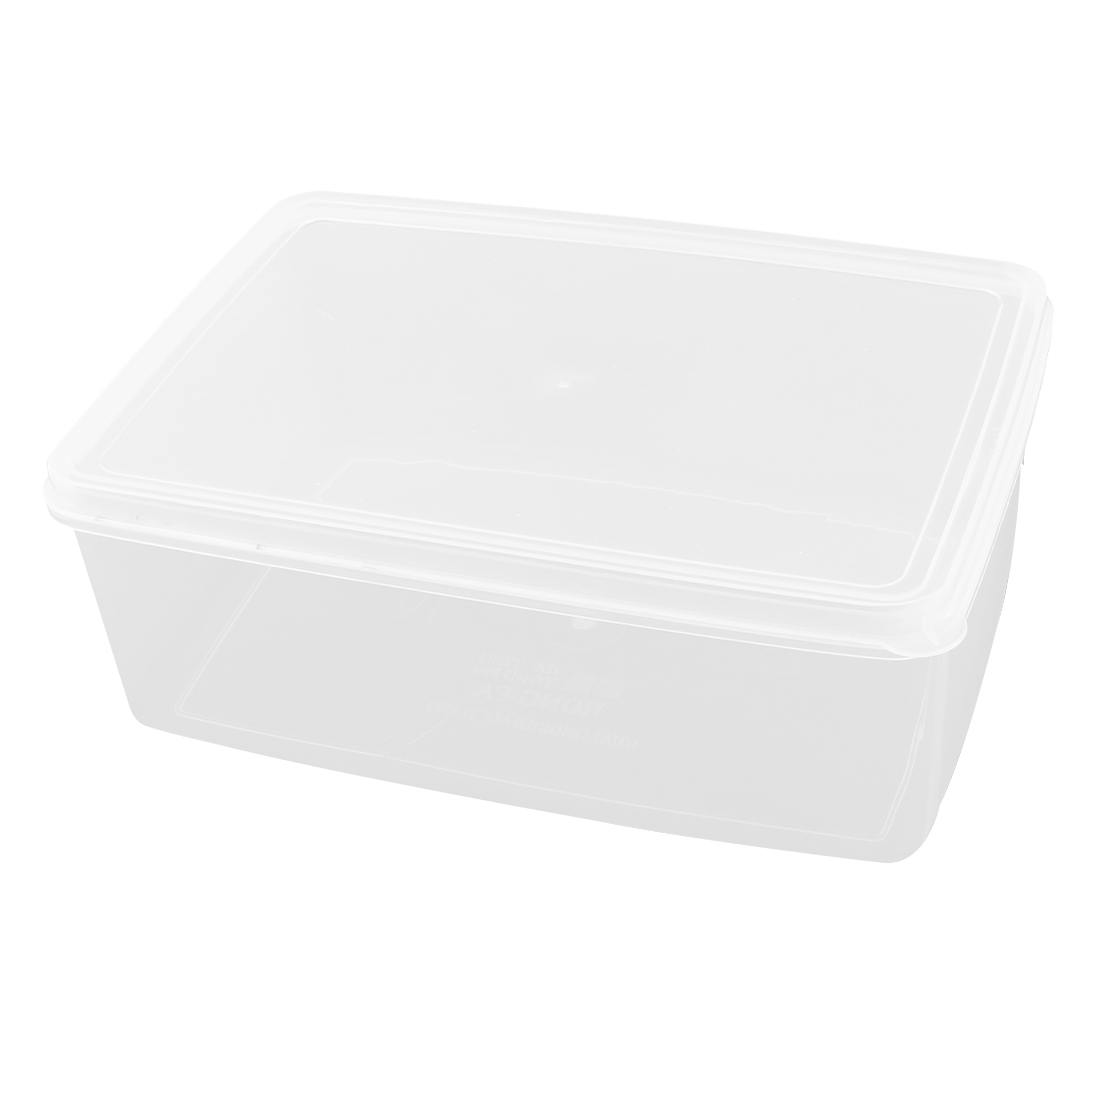 Portable Airtight Container Kitchen Ware Fridge Crisper Clear 290mmx190mmx95mm